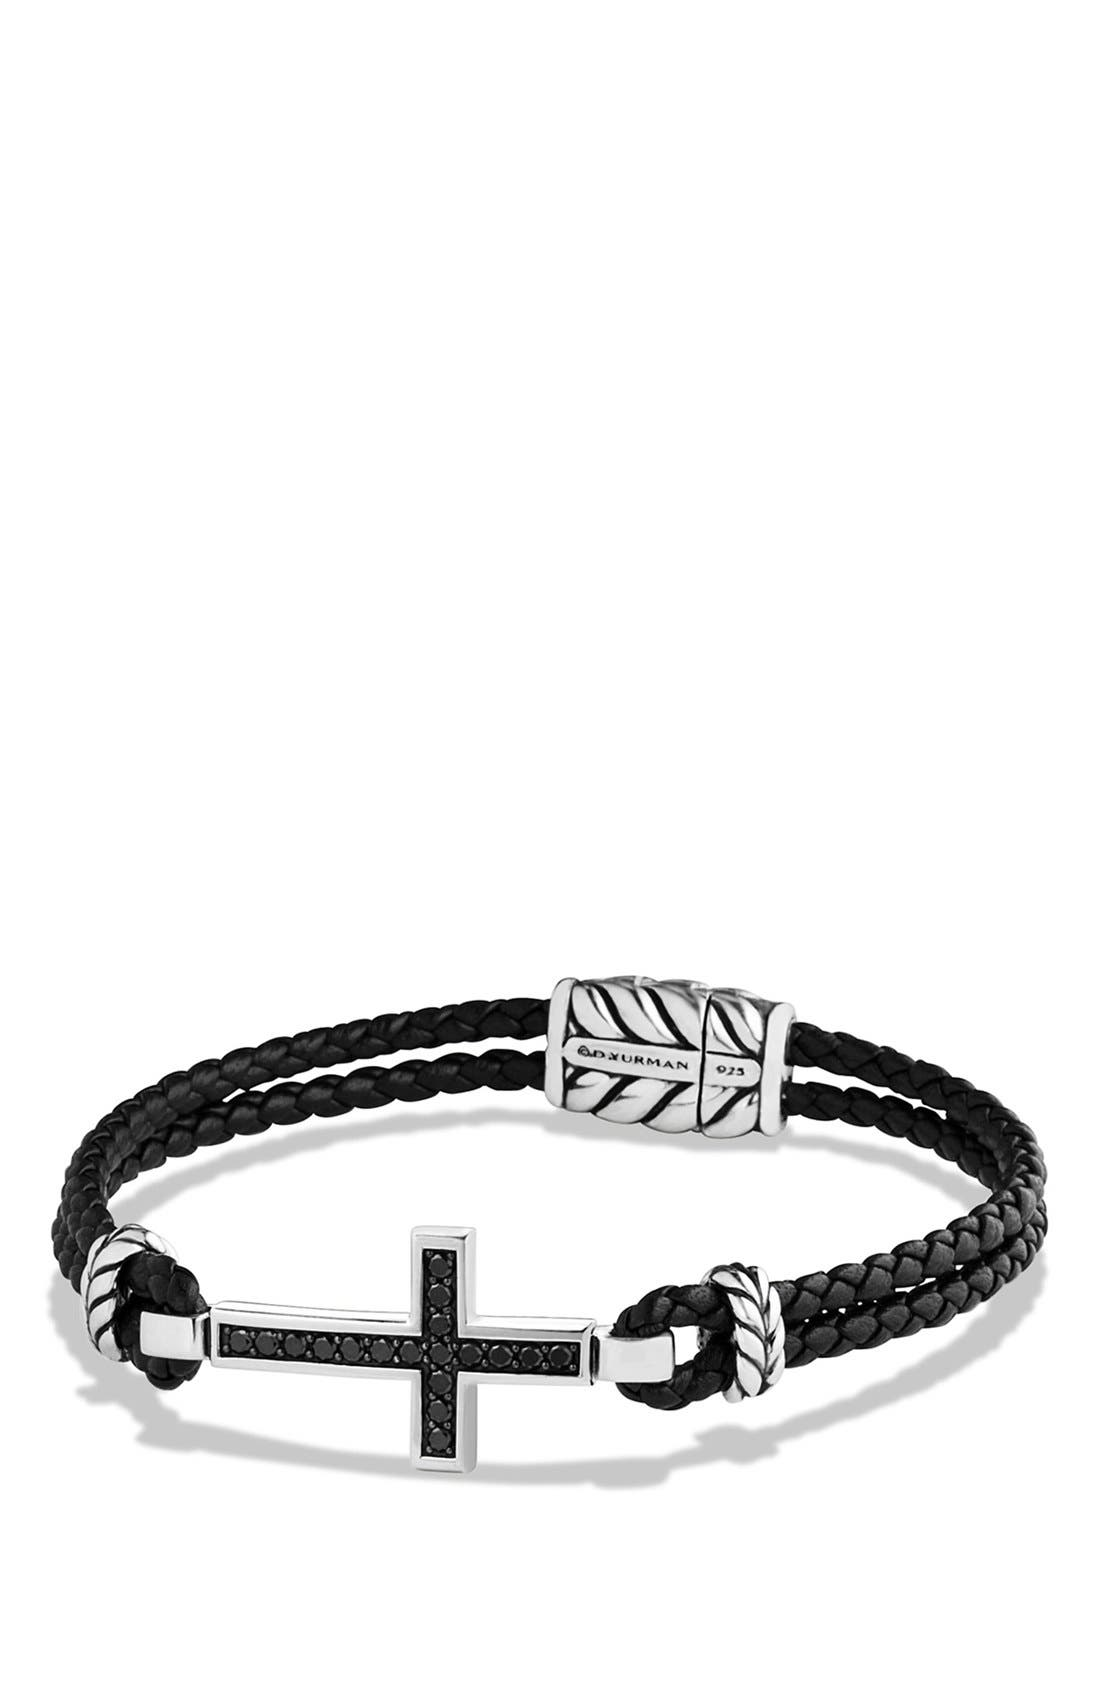 Alternate Image 1 Selected - David Yurman Pavé Cross Bracelet with Black Diamonds